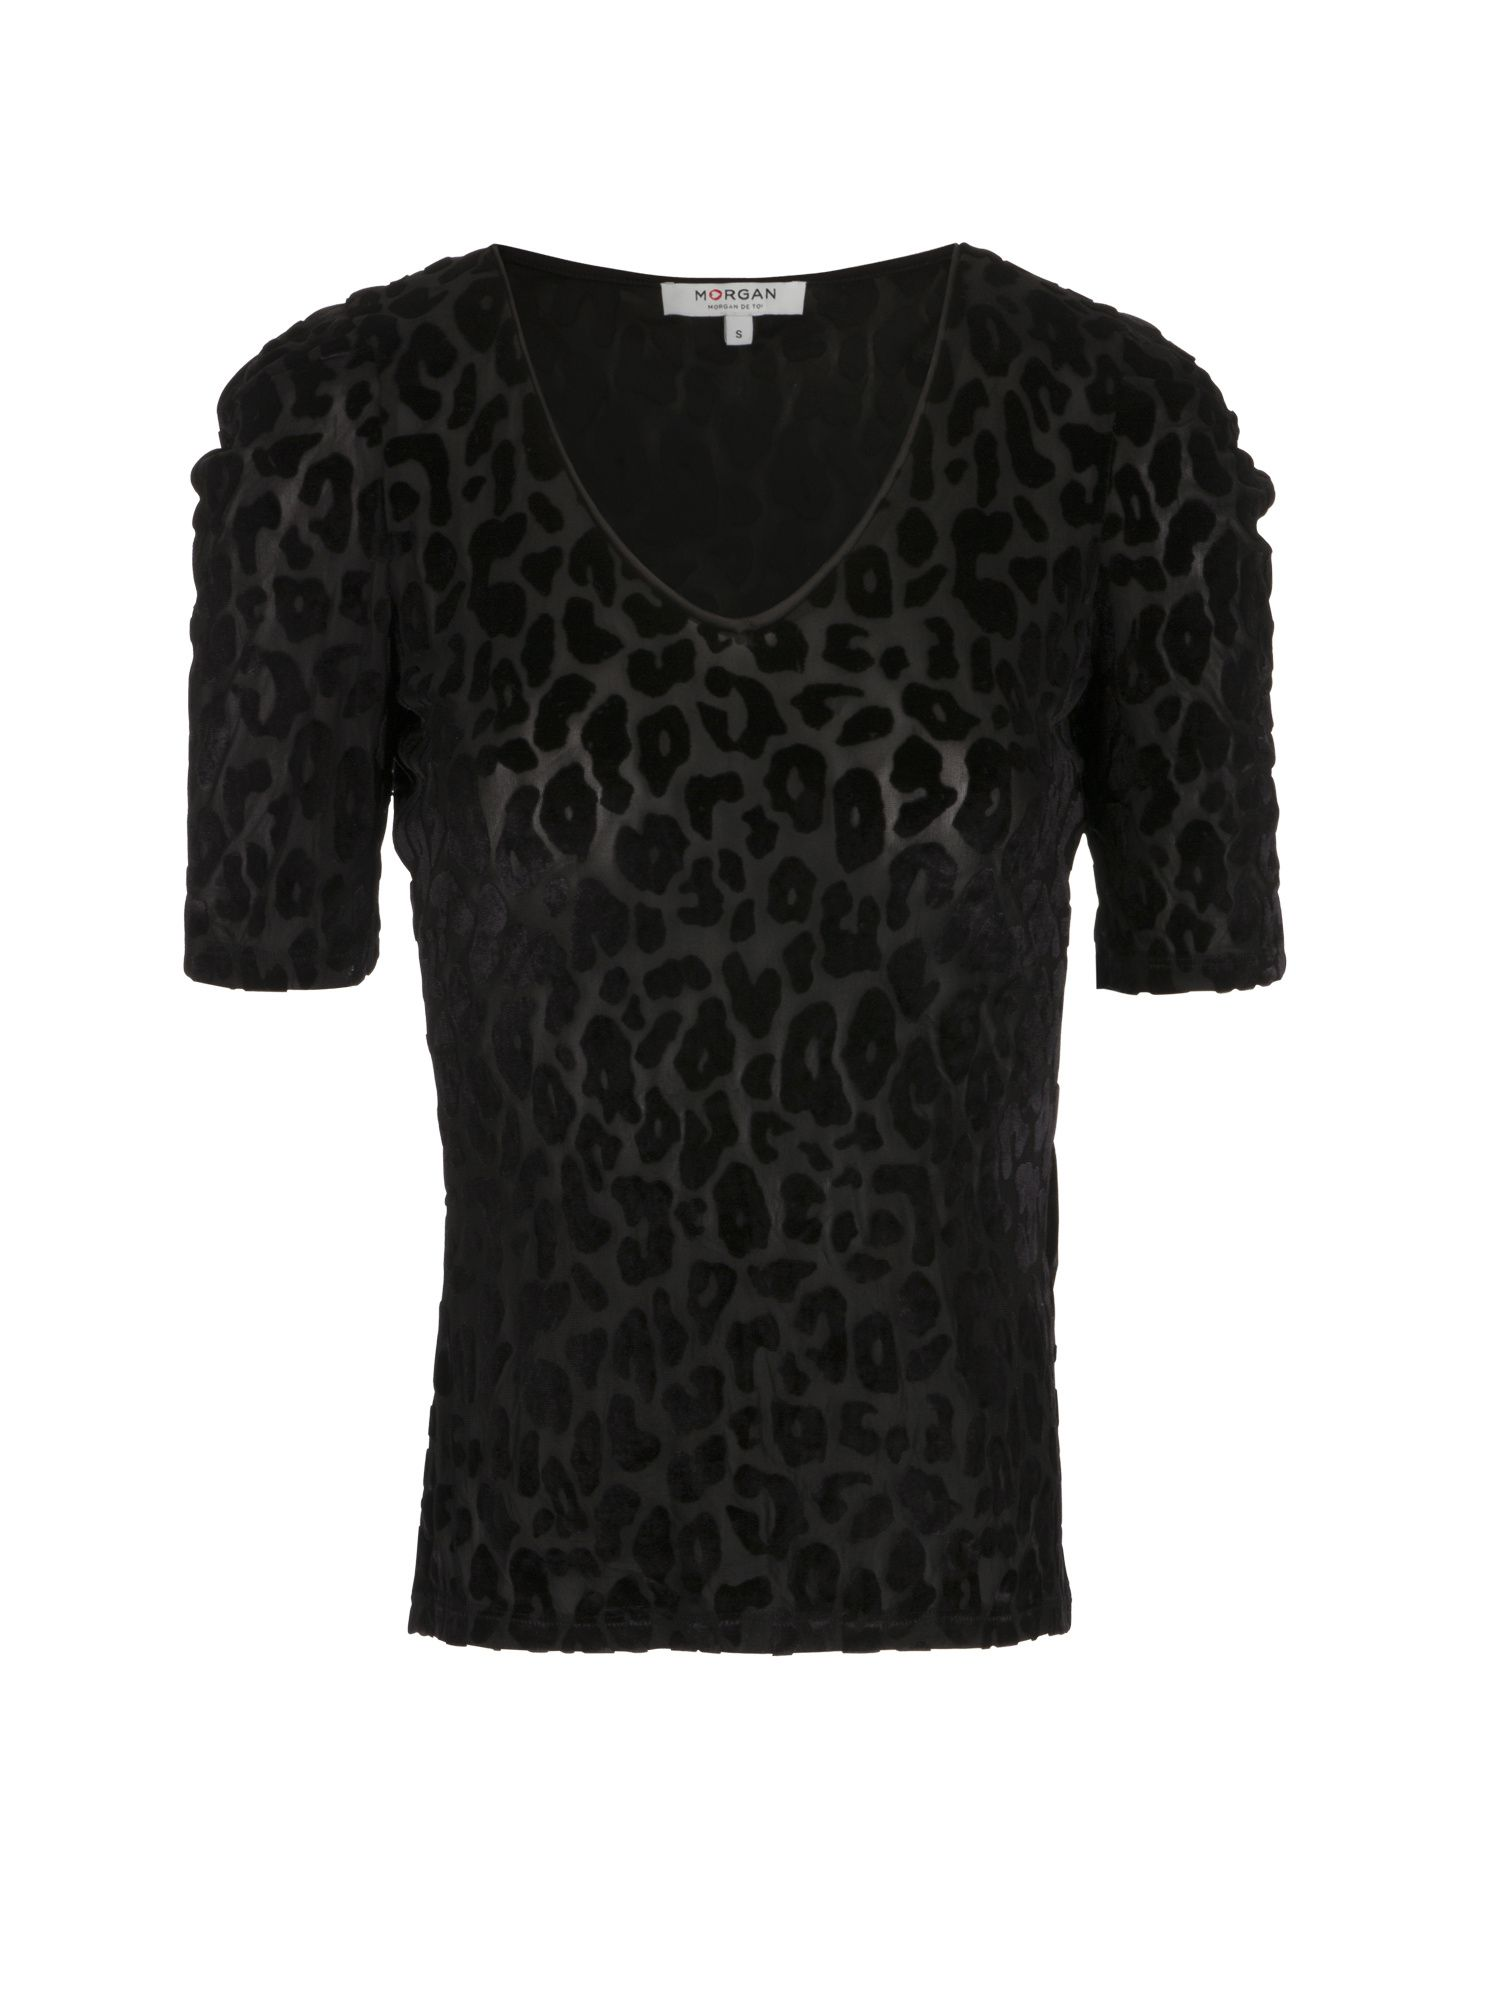 Morgan T-Shirt With Leopard Print Motif, Black